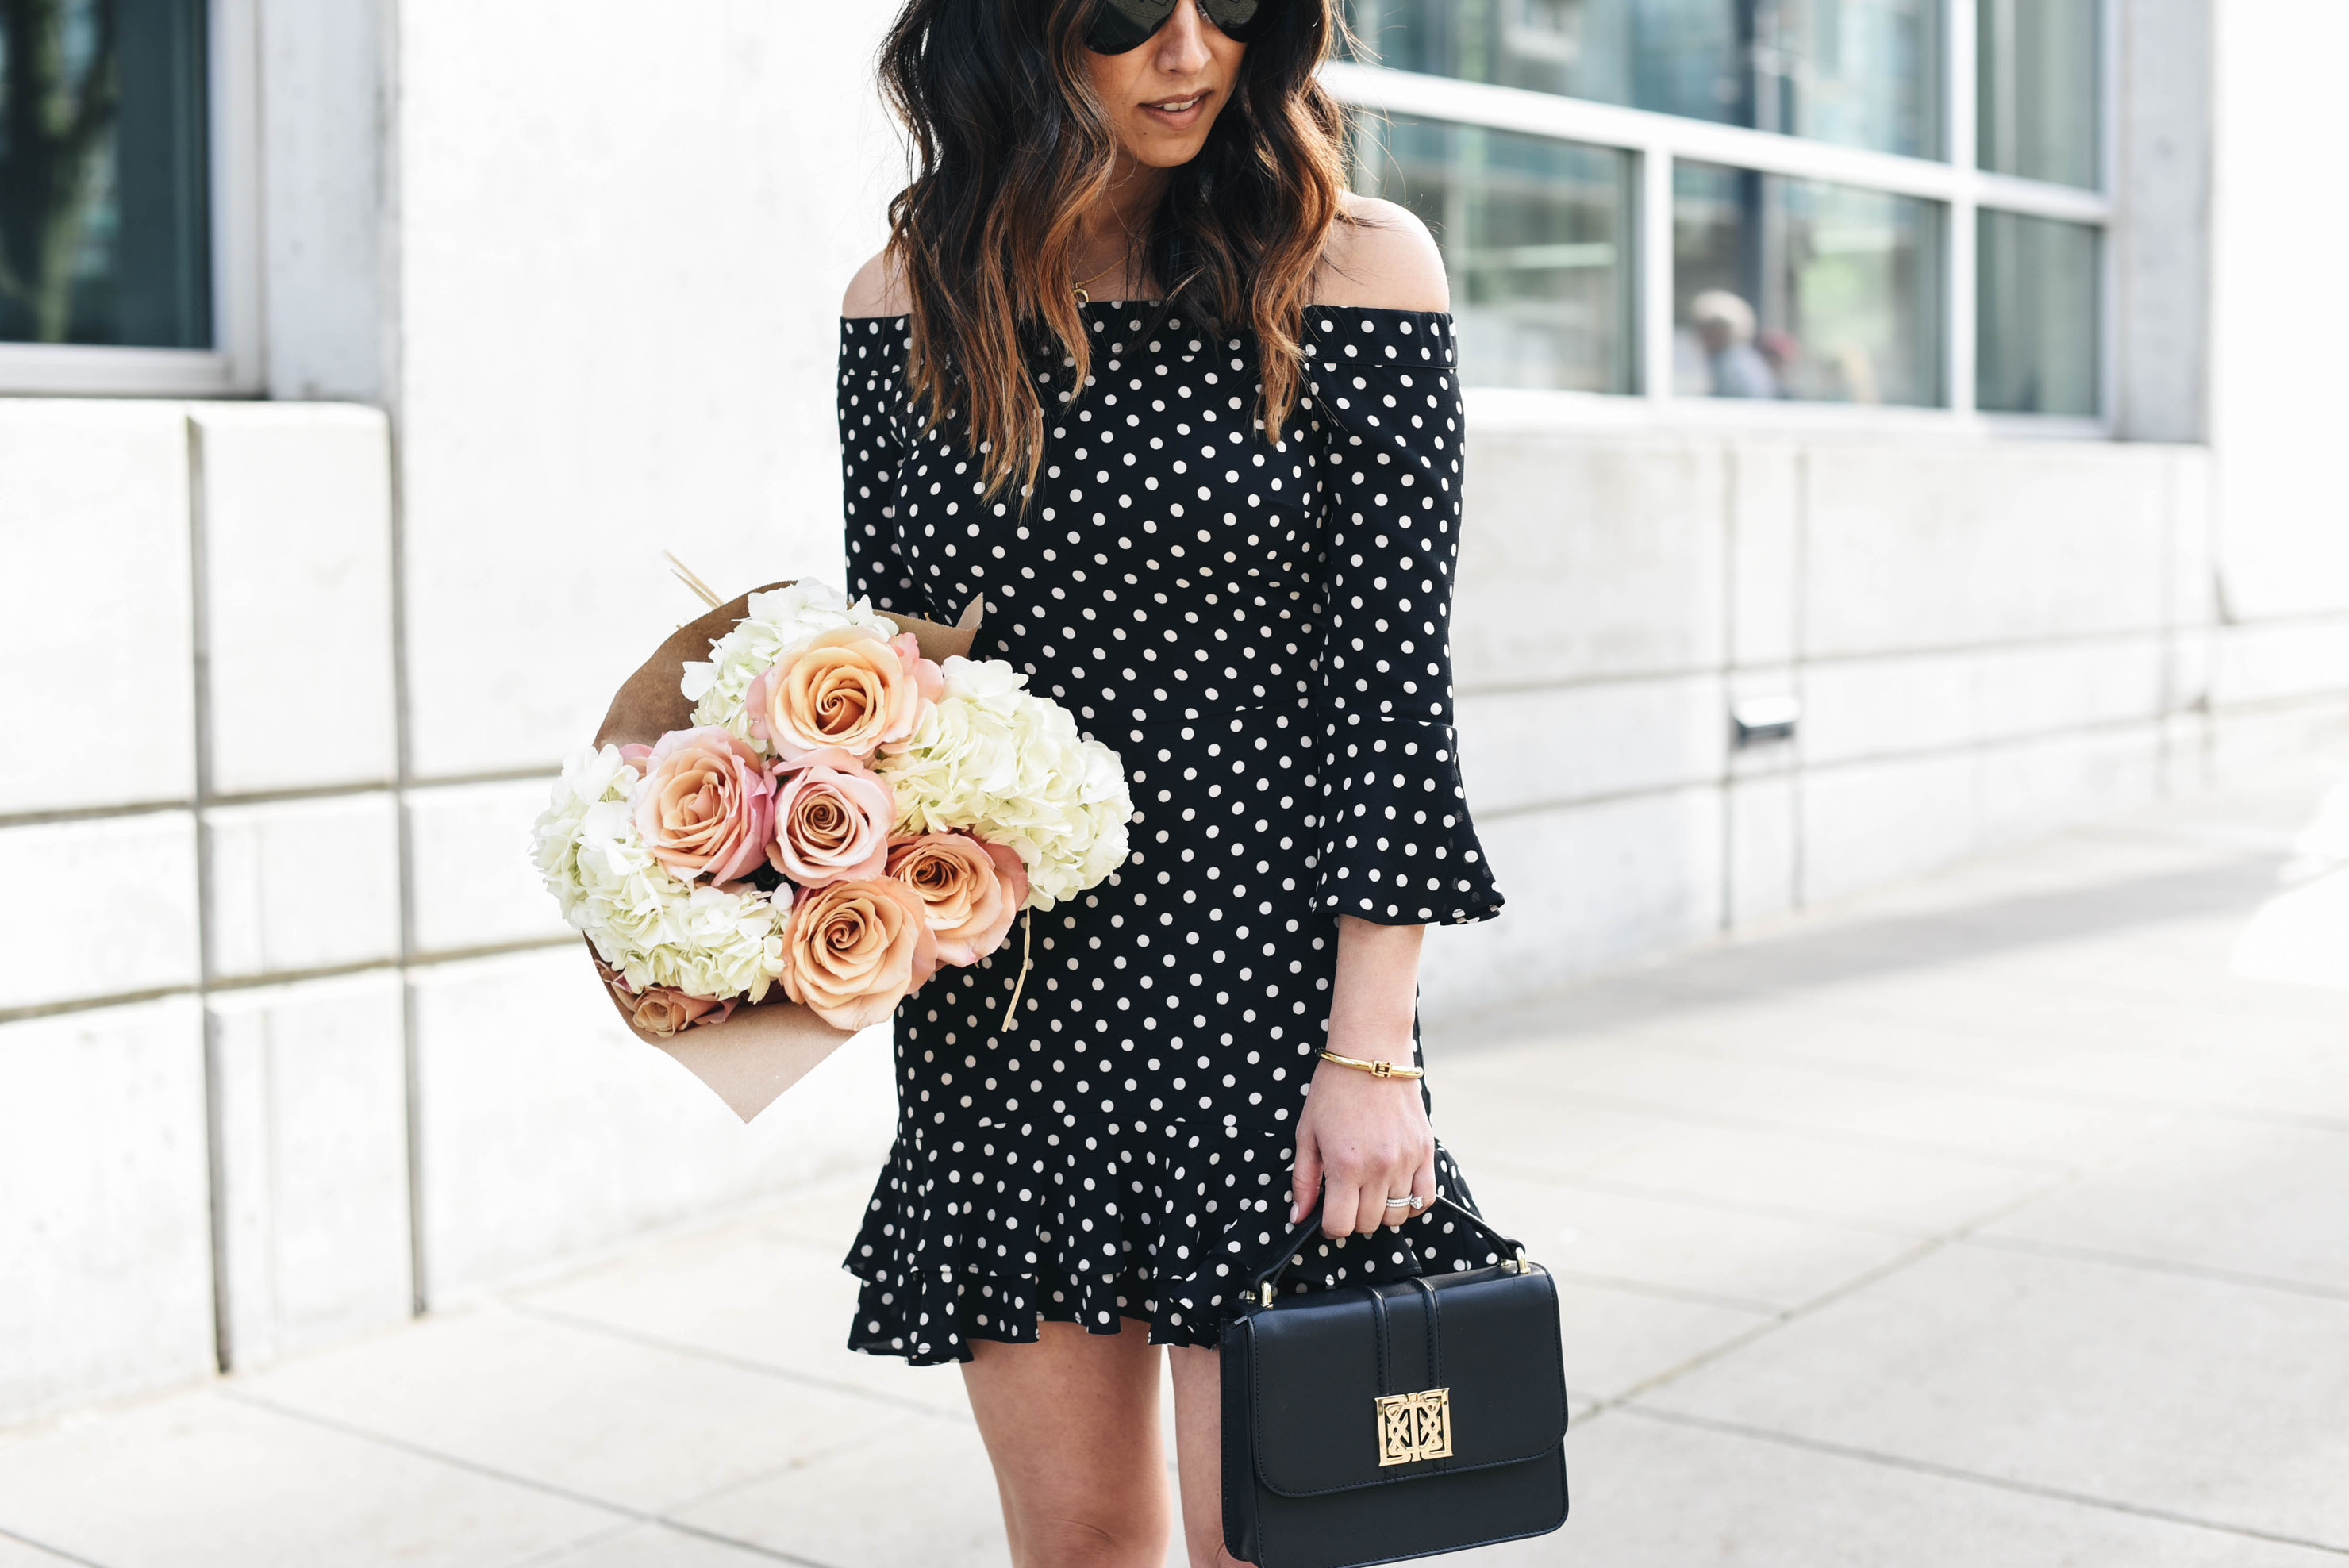 Topshop date night dresses